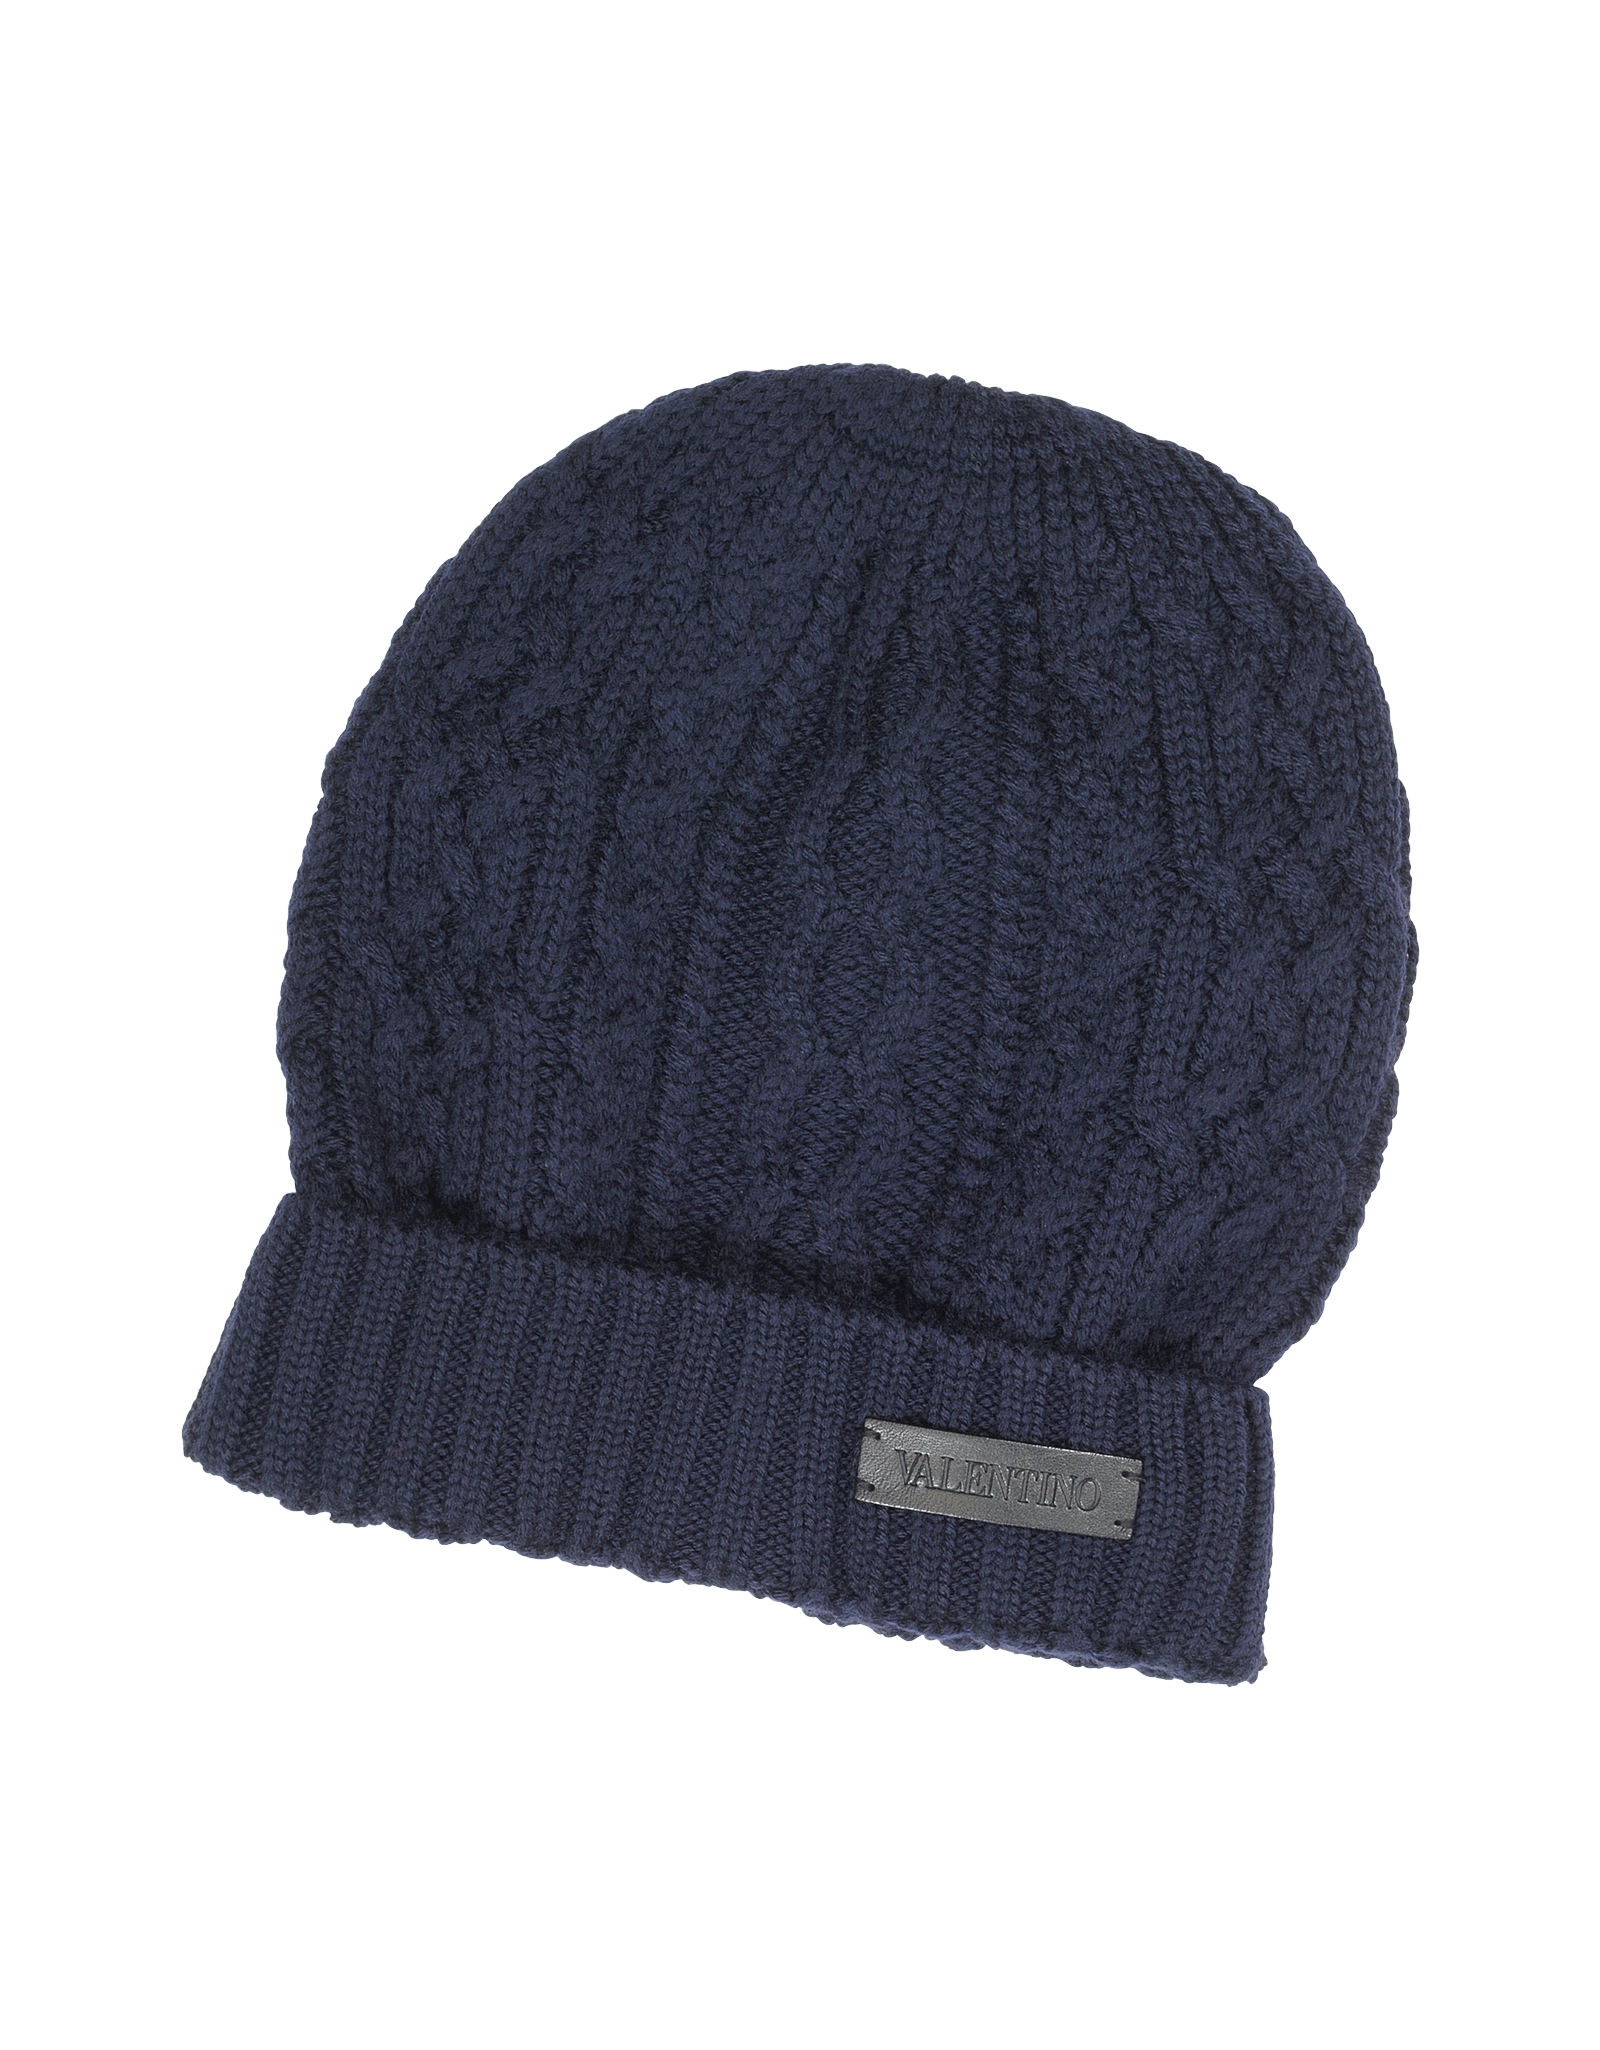 Lyst Valentino Cable Knit Wool Men S Hat In Blue For Men